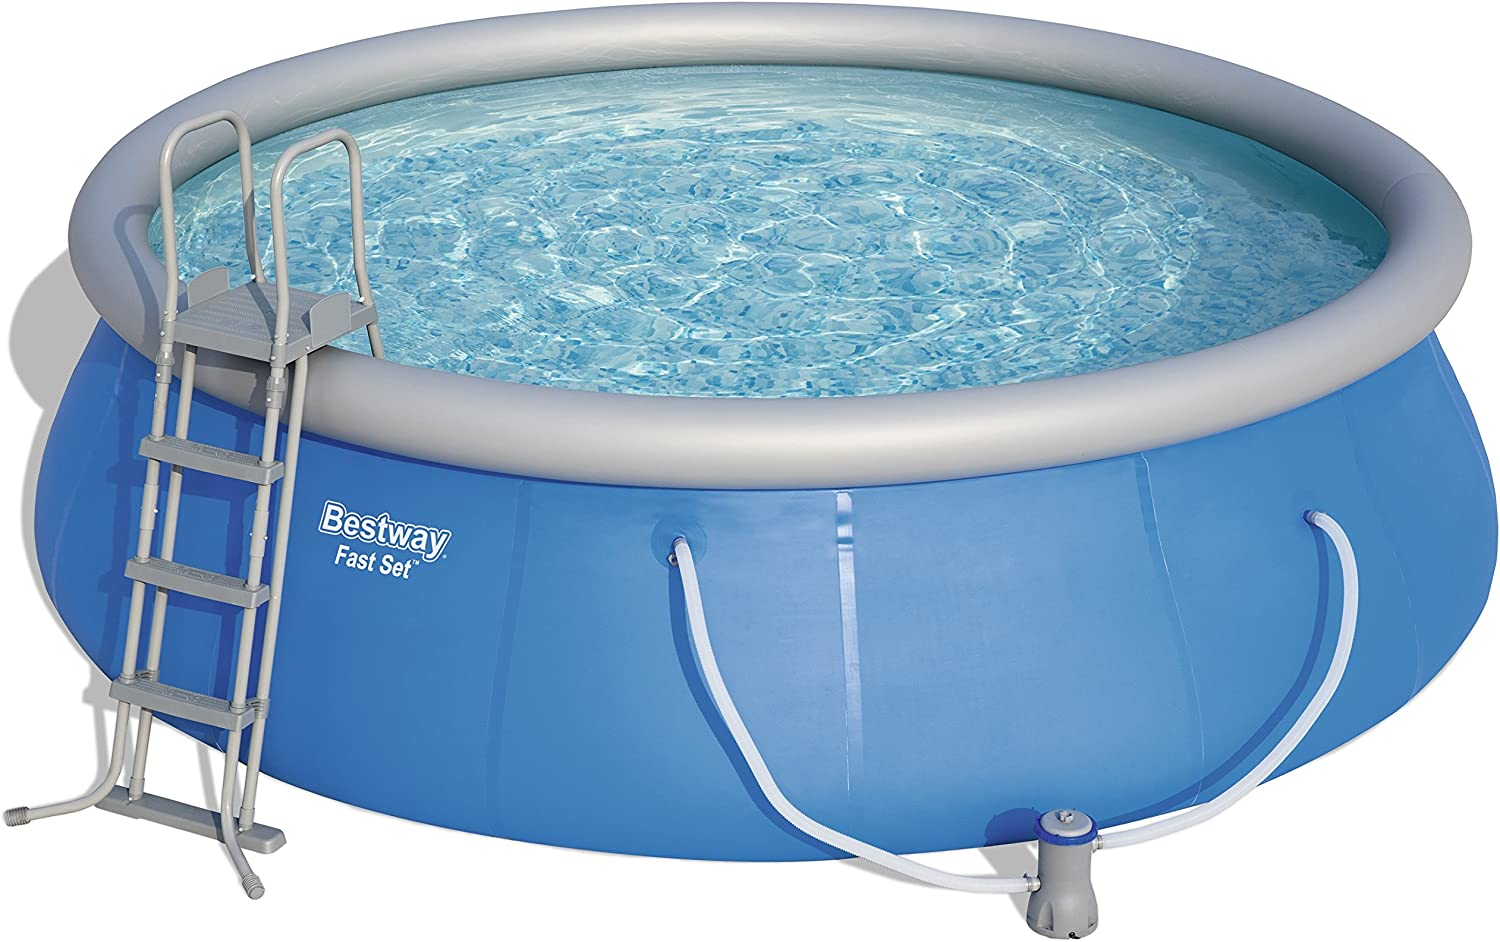 Bestway 57289 Piscina Fast Set, Multicolor, M: Amazon.es: Deportes y aire libre